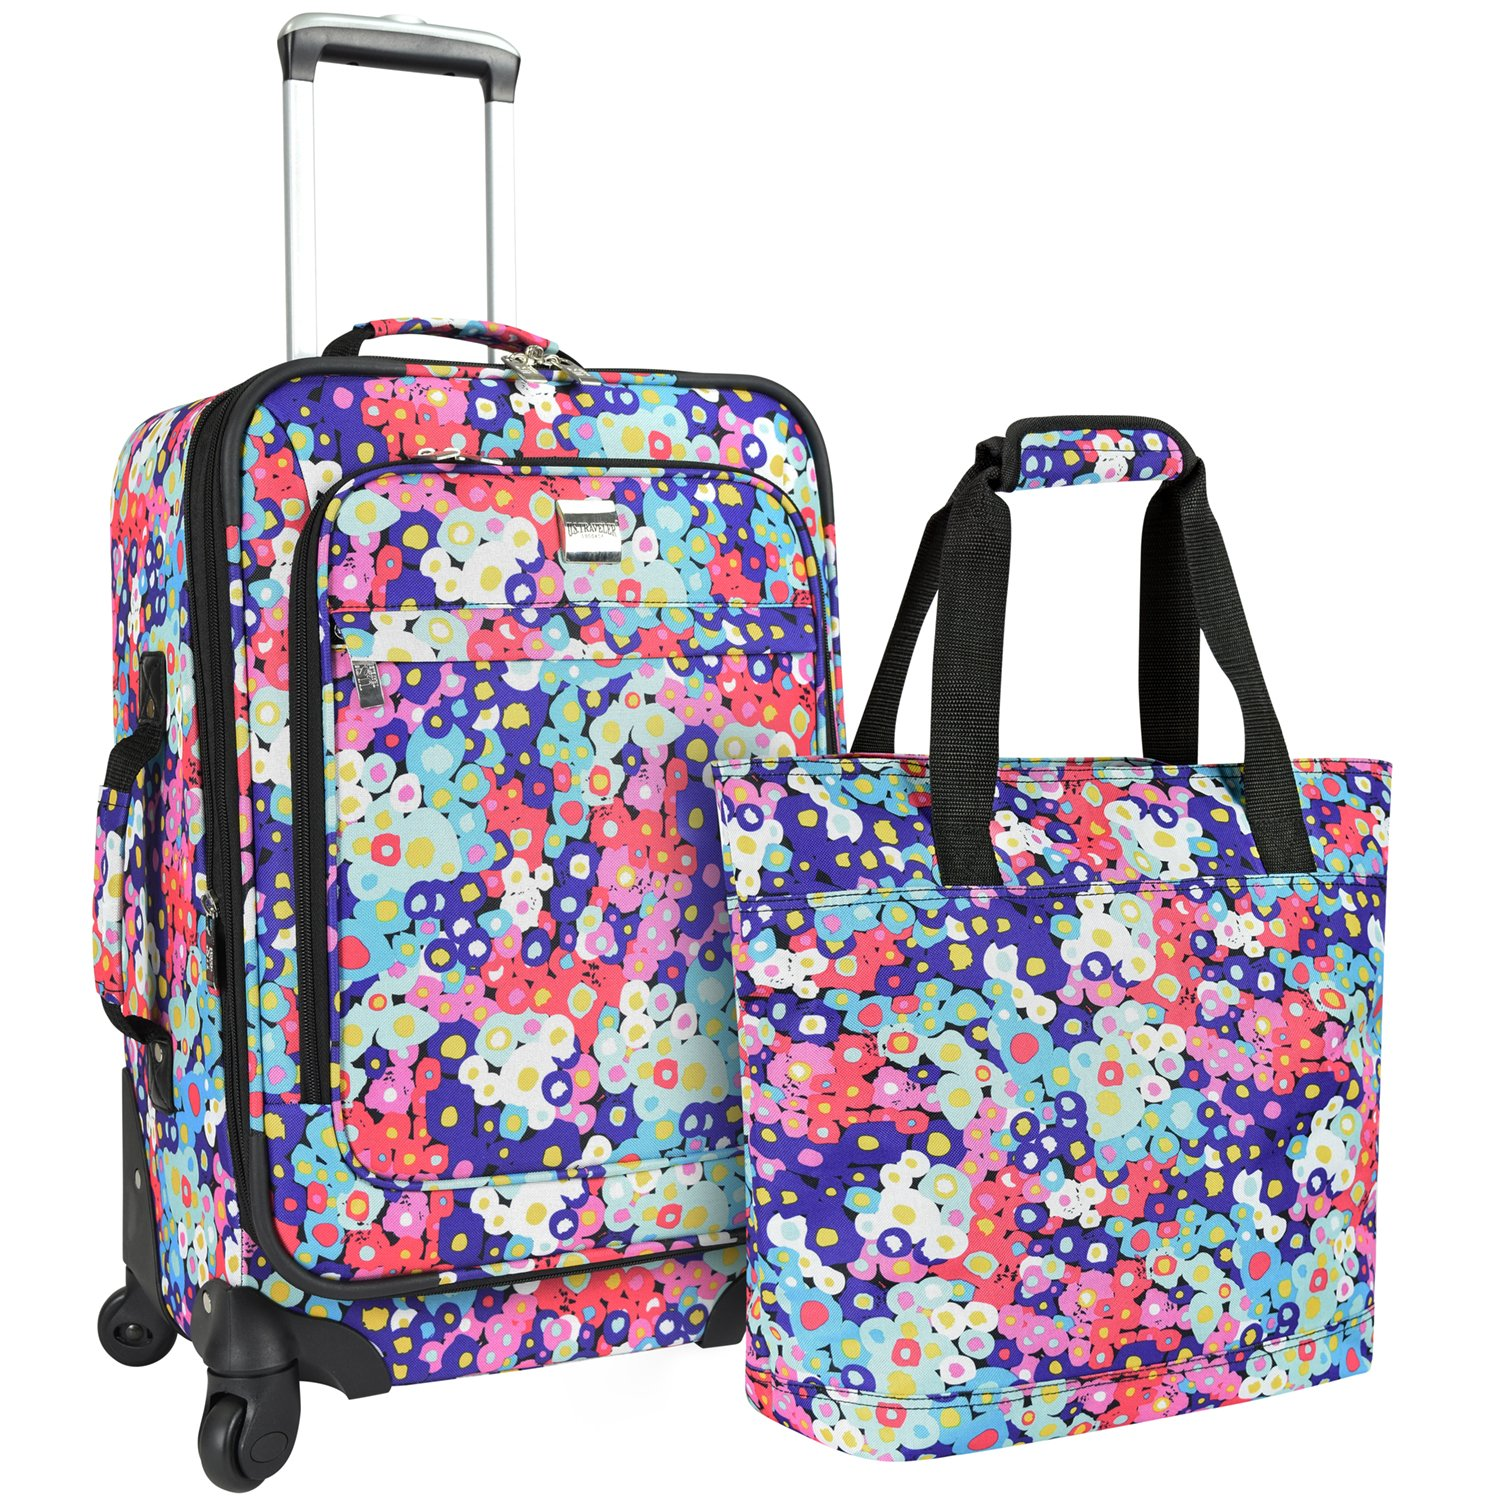 U.S Travelers Lanford 2-Piece Luggage Set (19''/22''), Flower